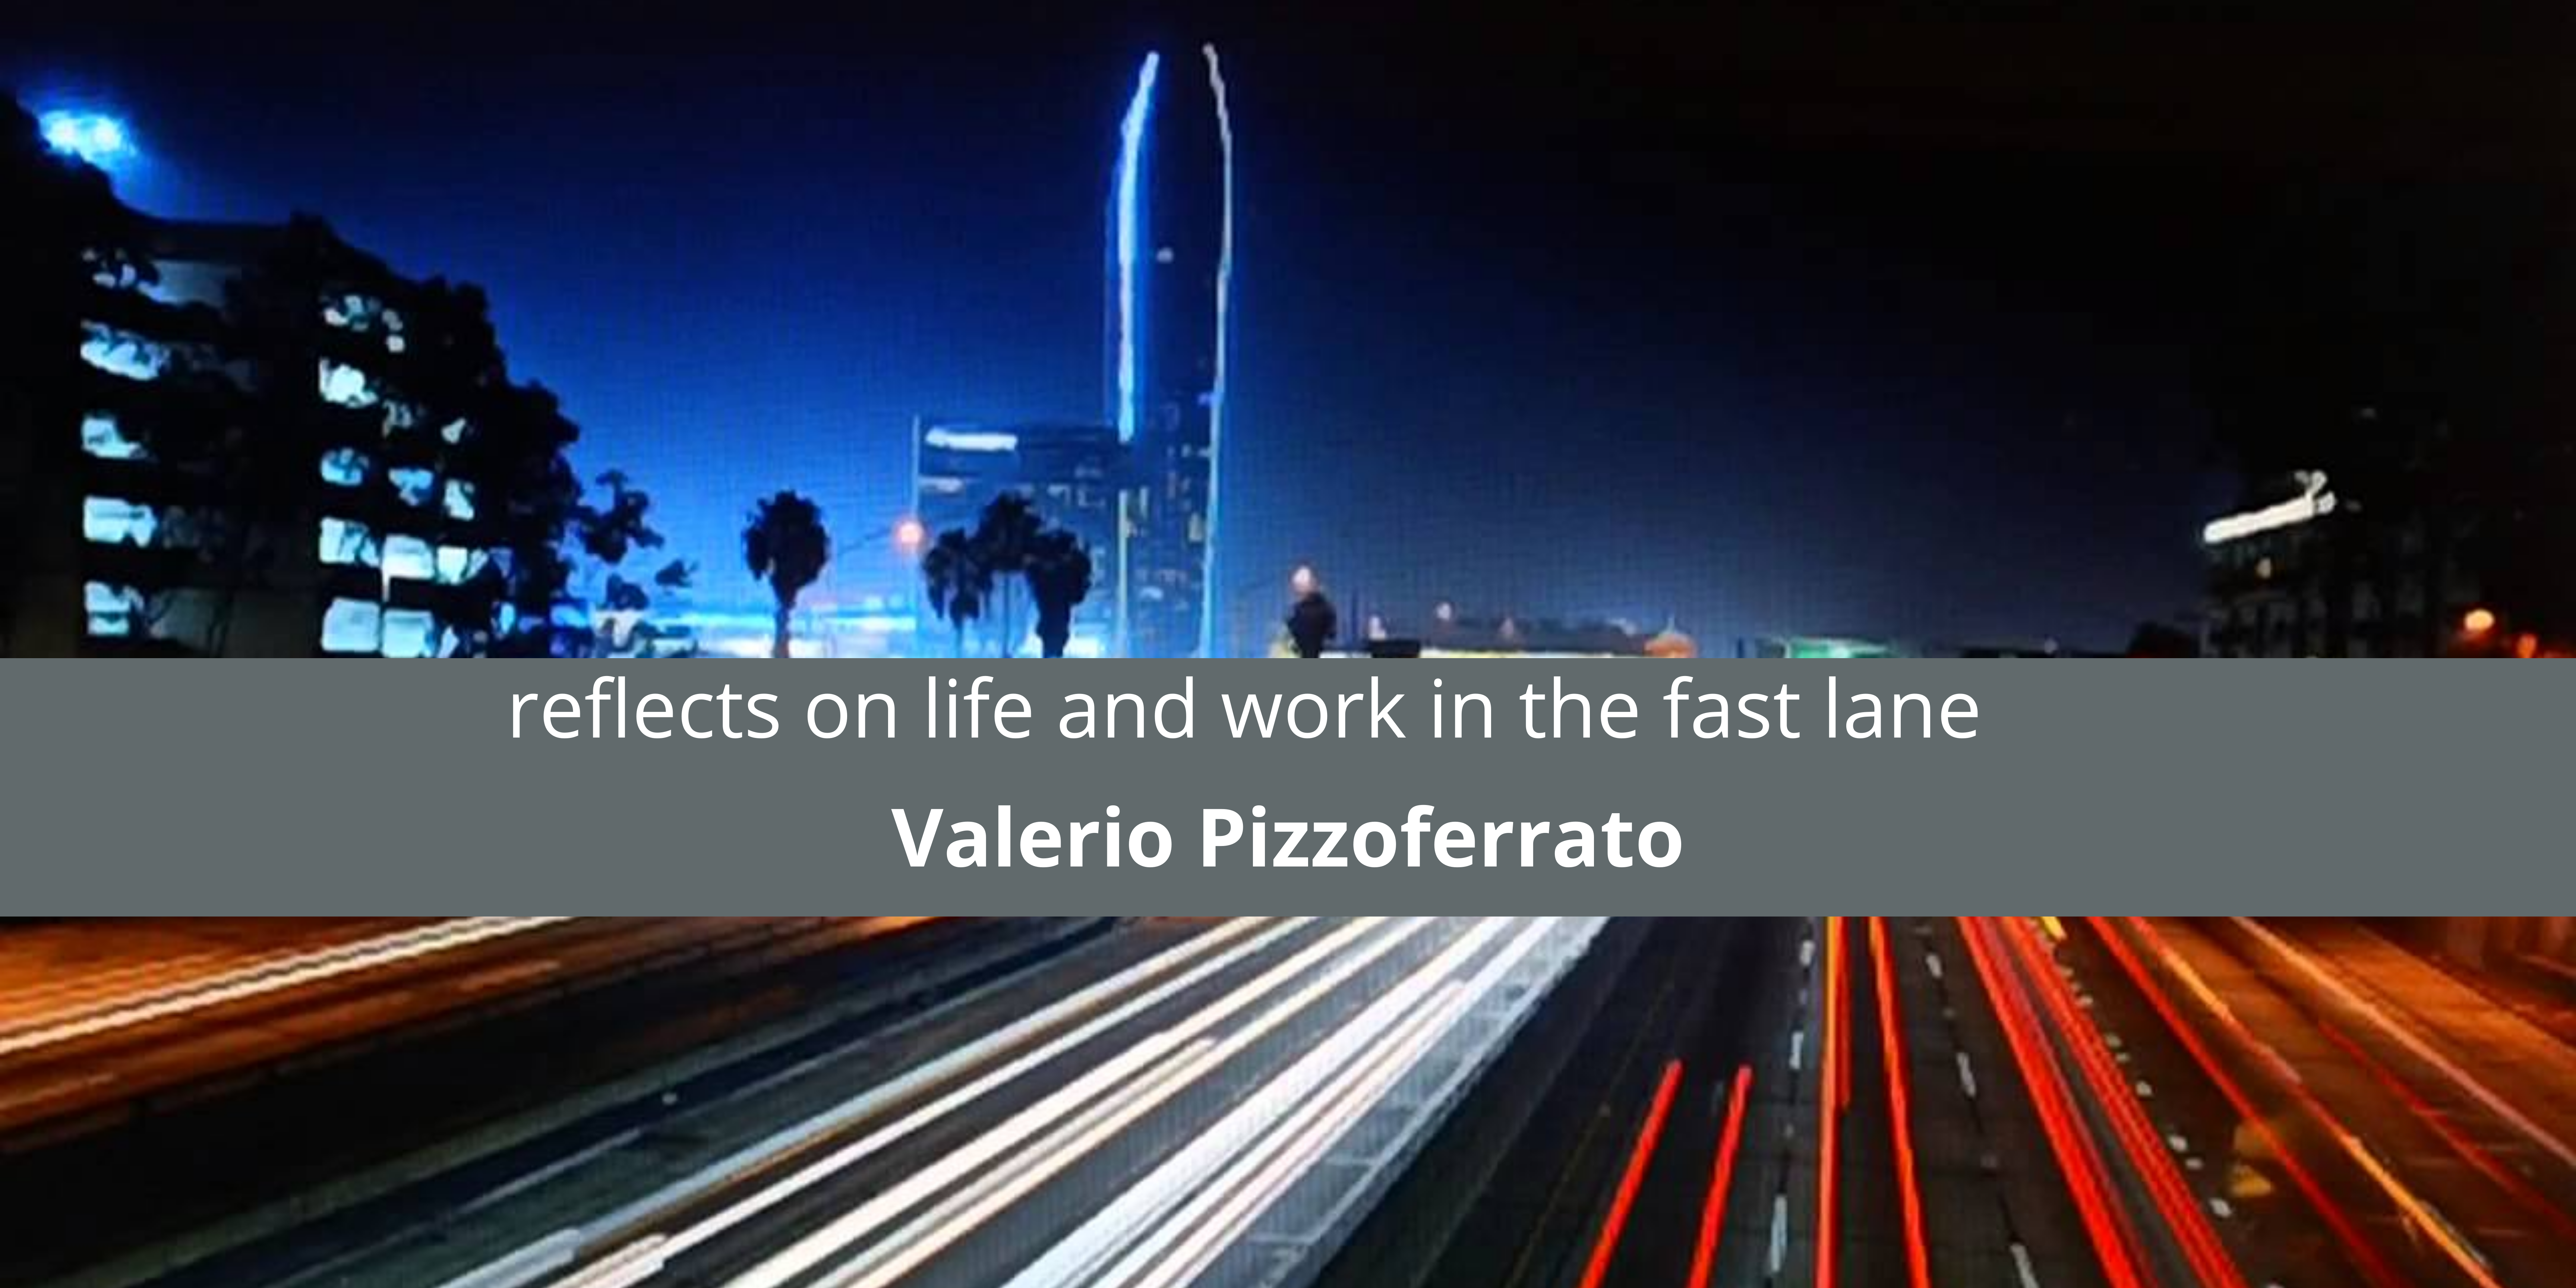 Valerio Pizzoferrato reflects on life and work in the fast lane